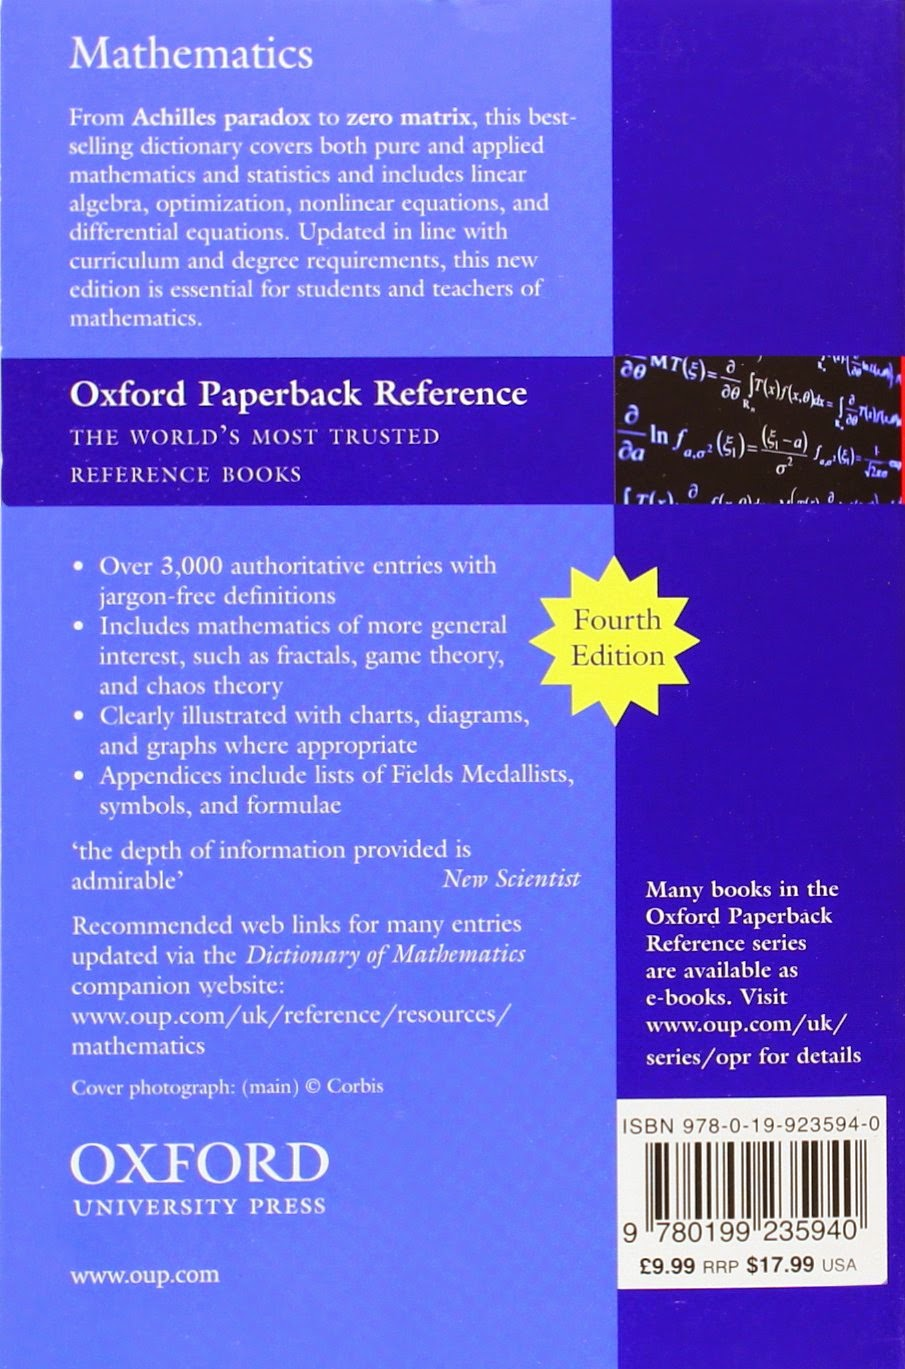 Oxford Dictionary pdf Full